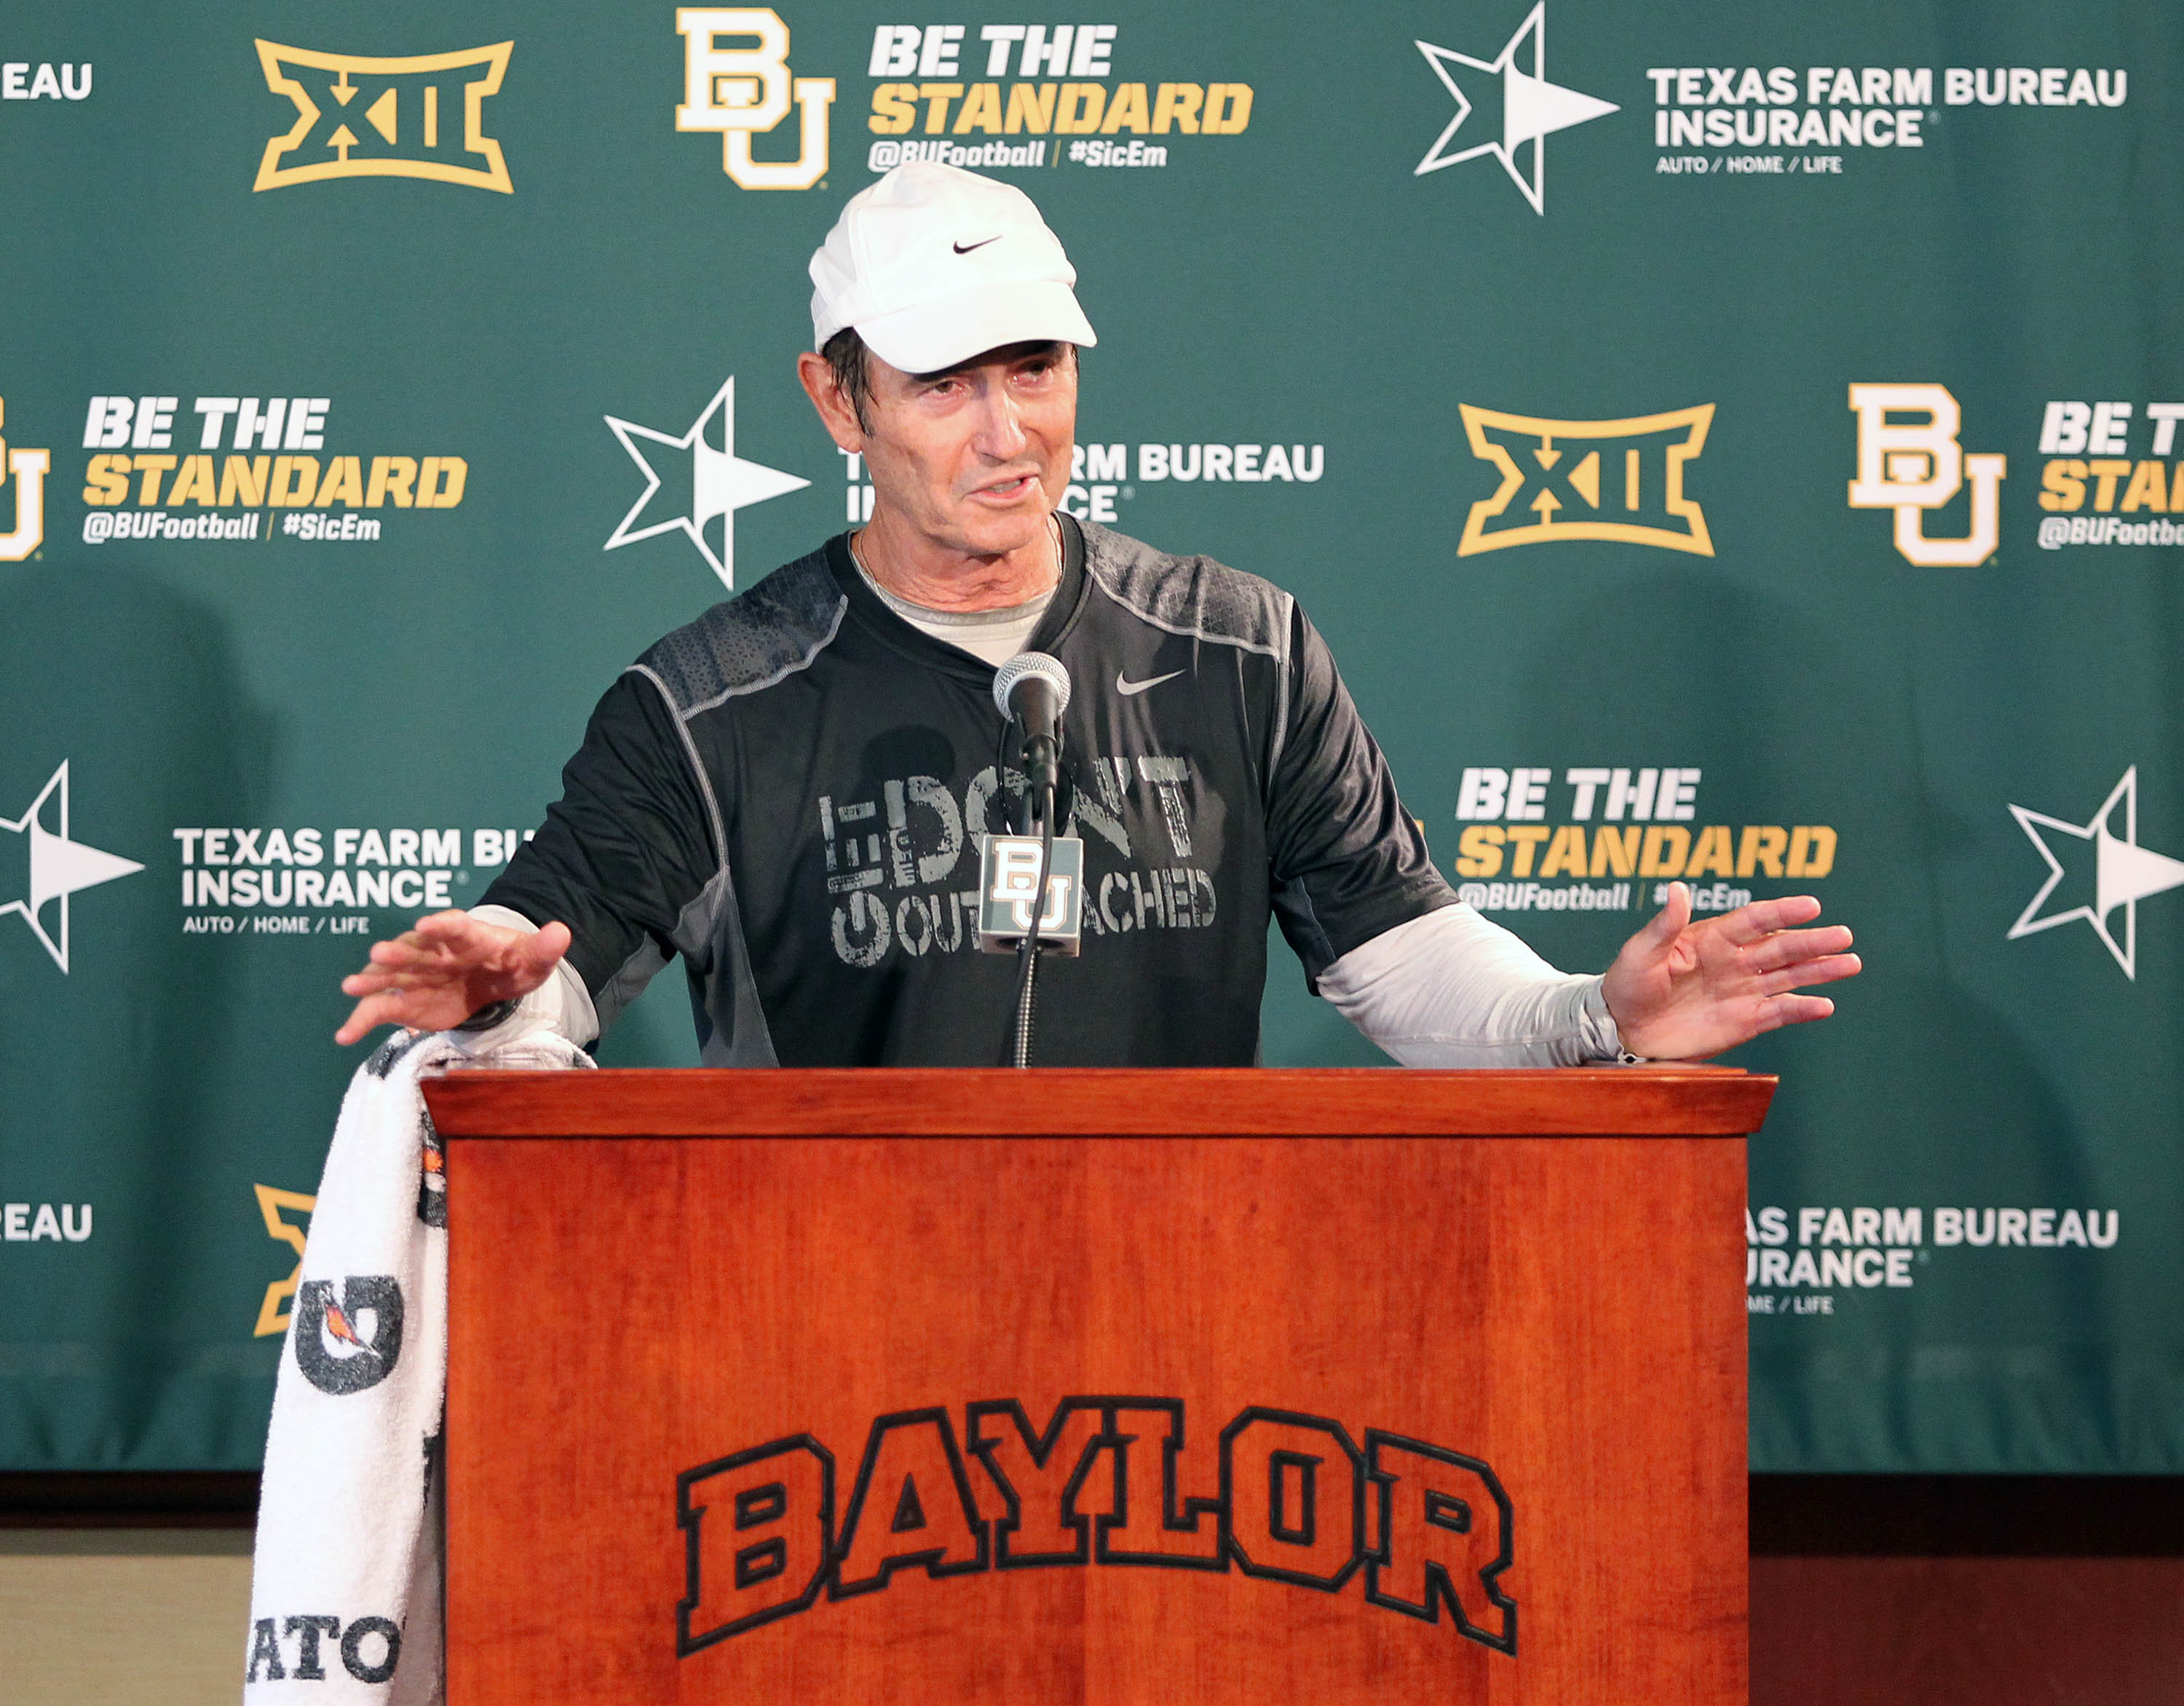 Baylor head football coach Art Briles addresses the media, Monday Aug. 31, 2015, in Waco, Texas. (Jerry Larson/Waco Tribune-Herald via AP) MANDATORY CREDIT